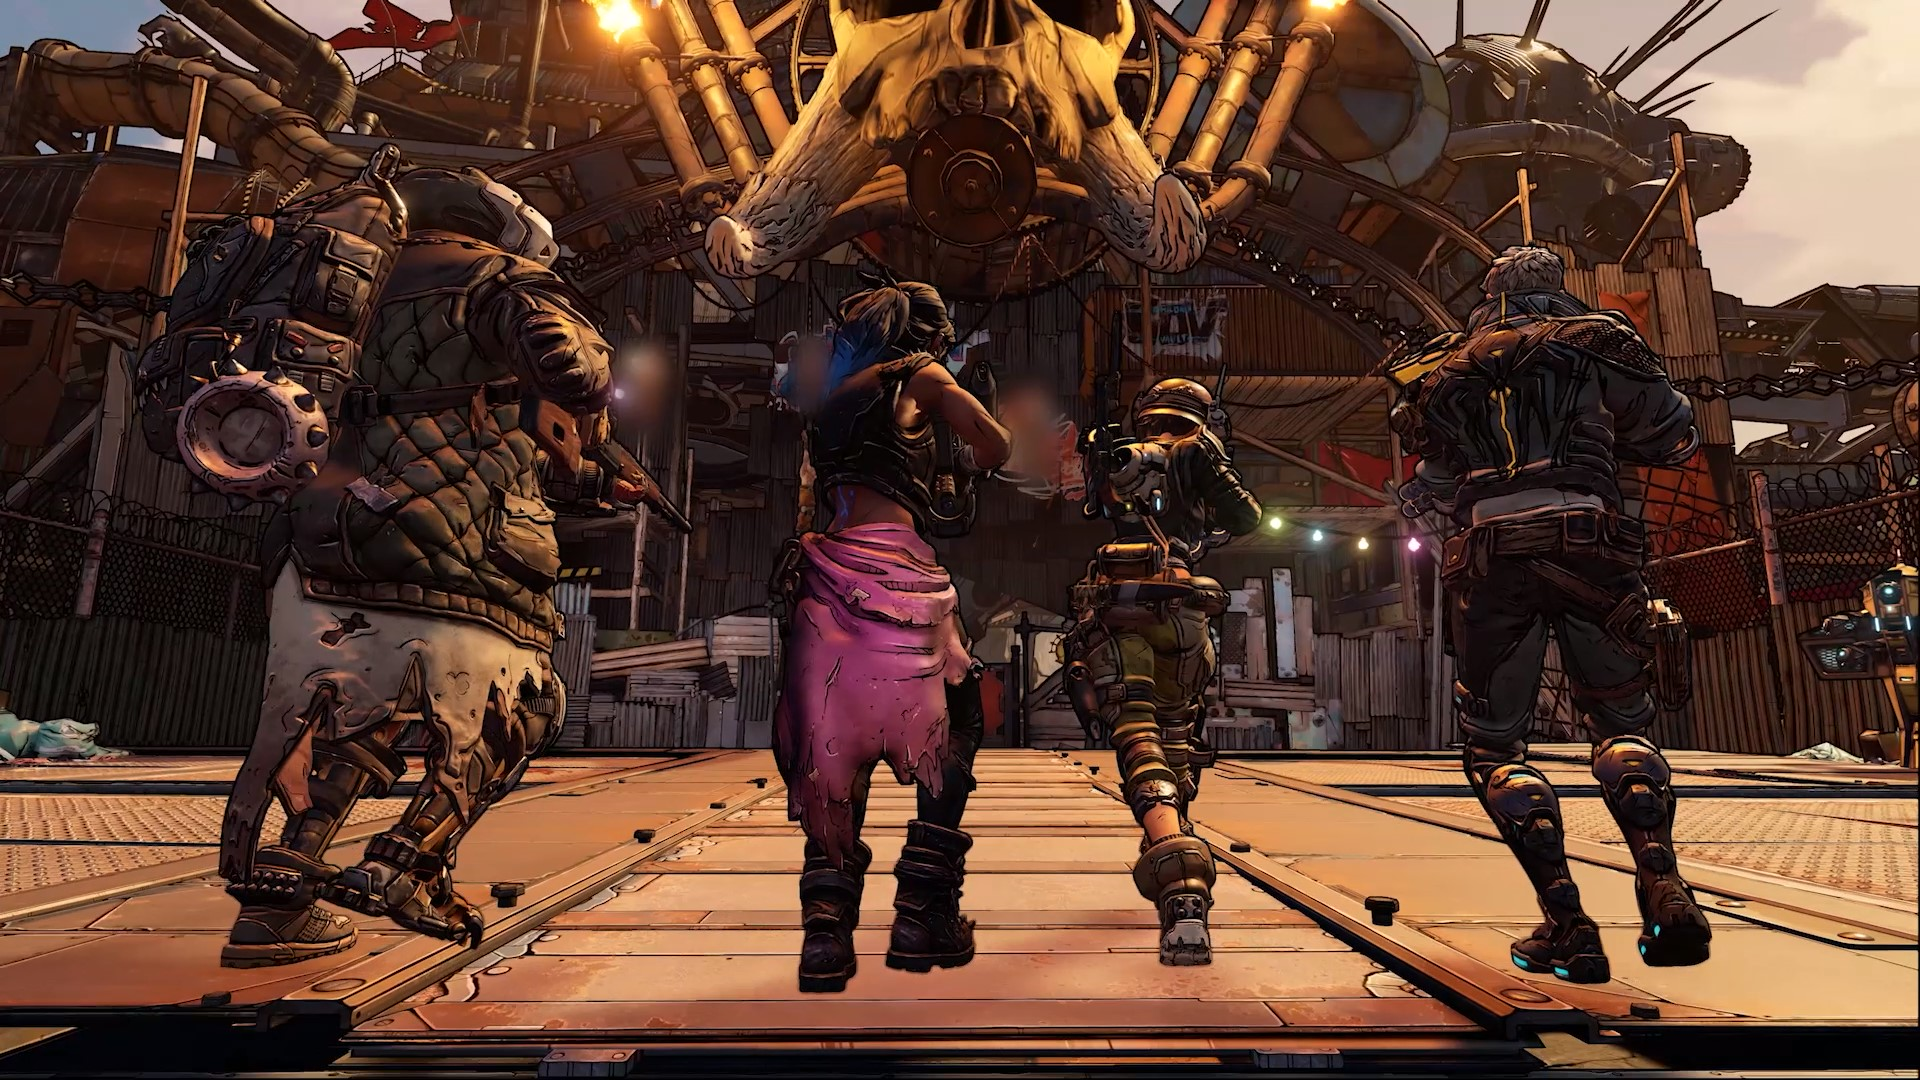 All four playable characters of Borderlands 3